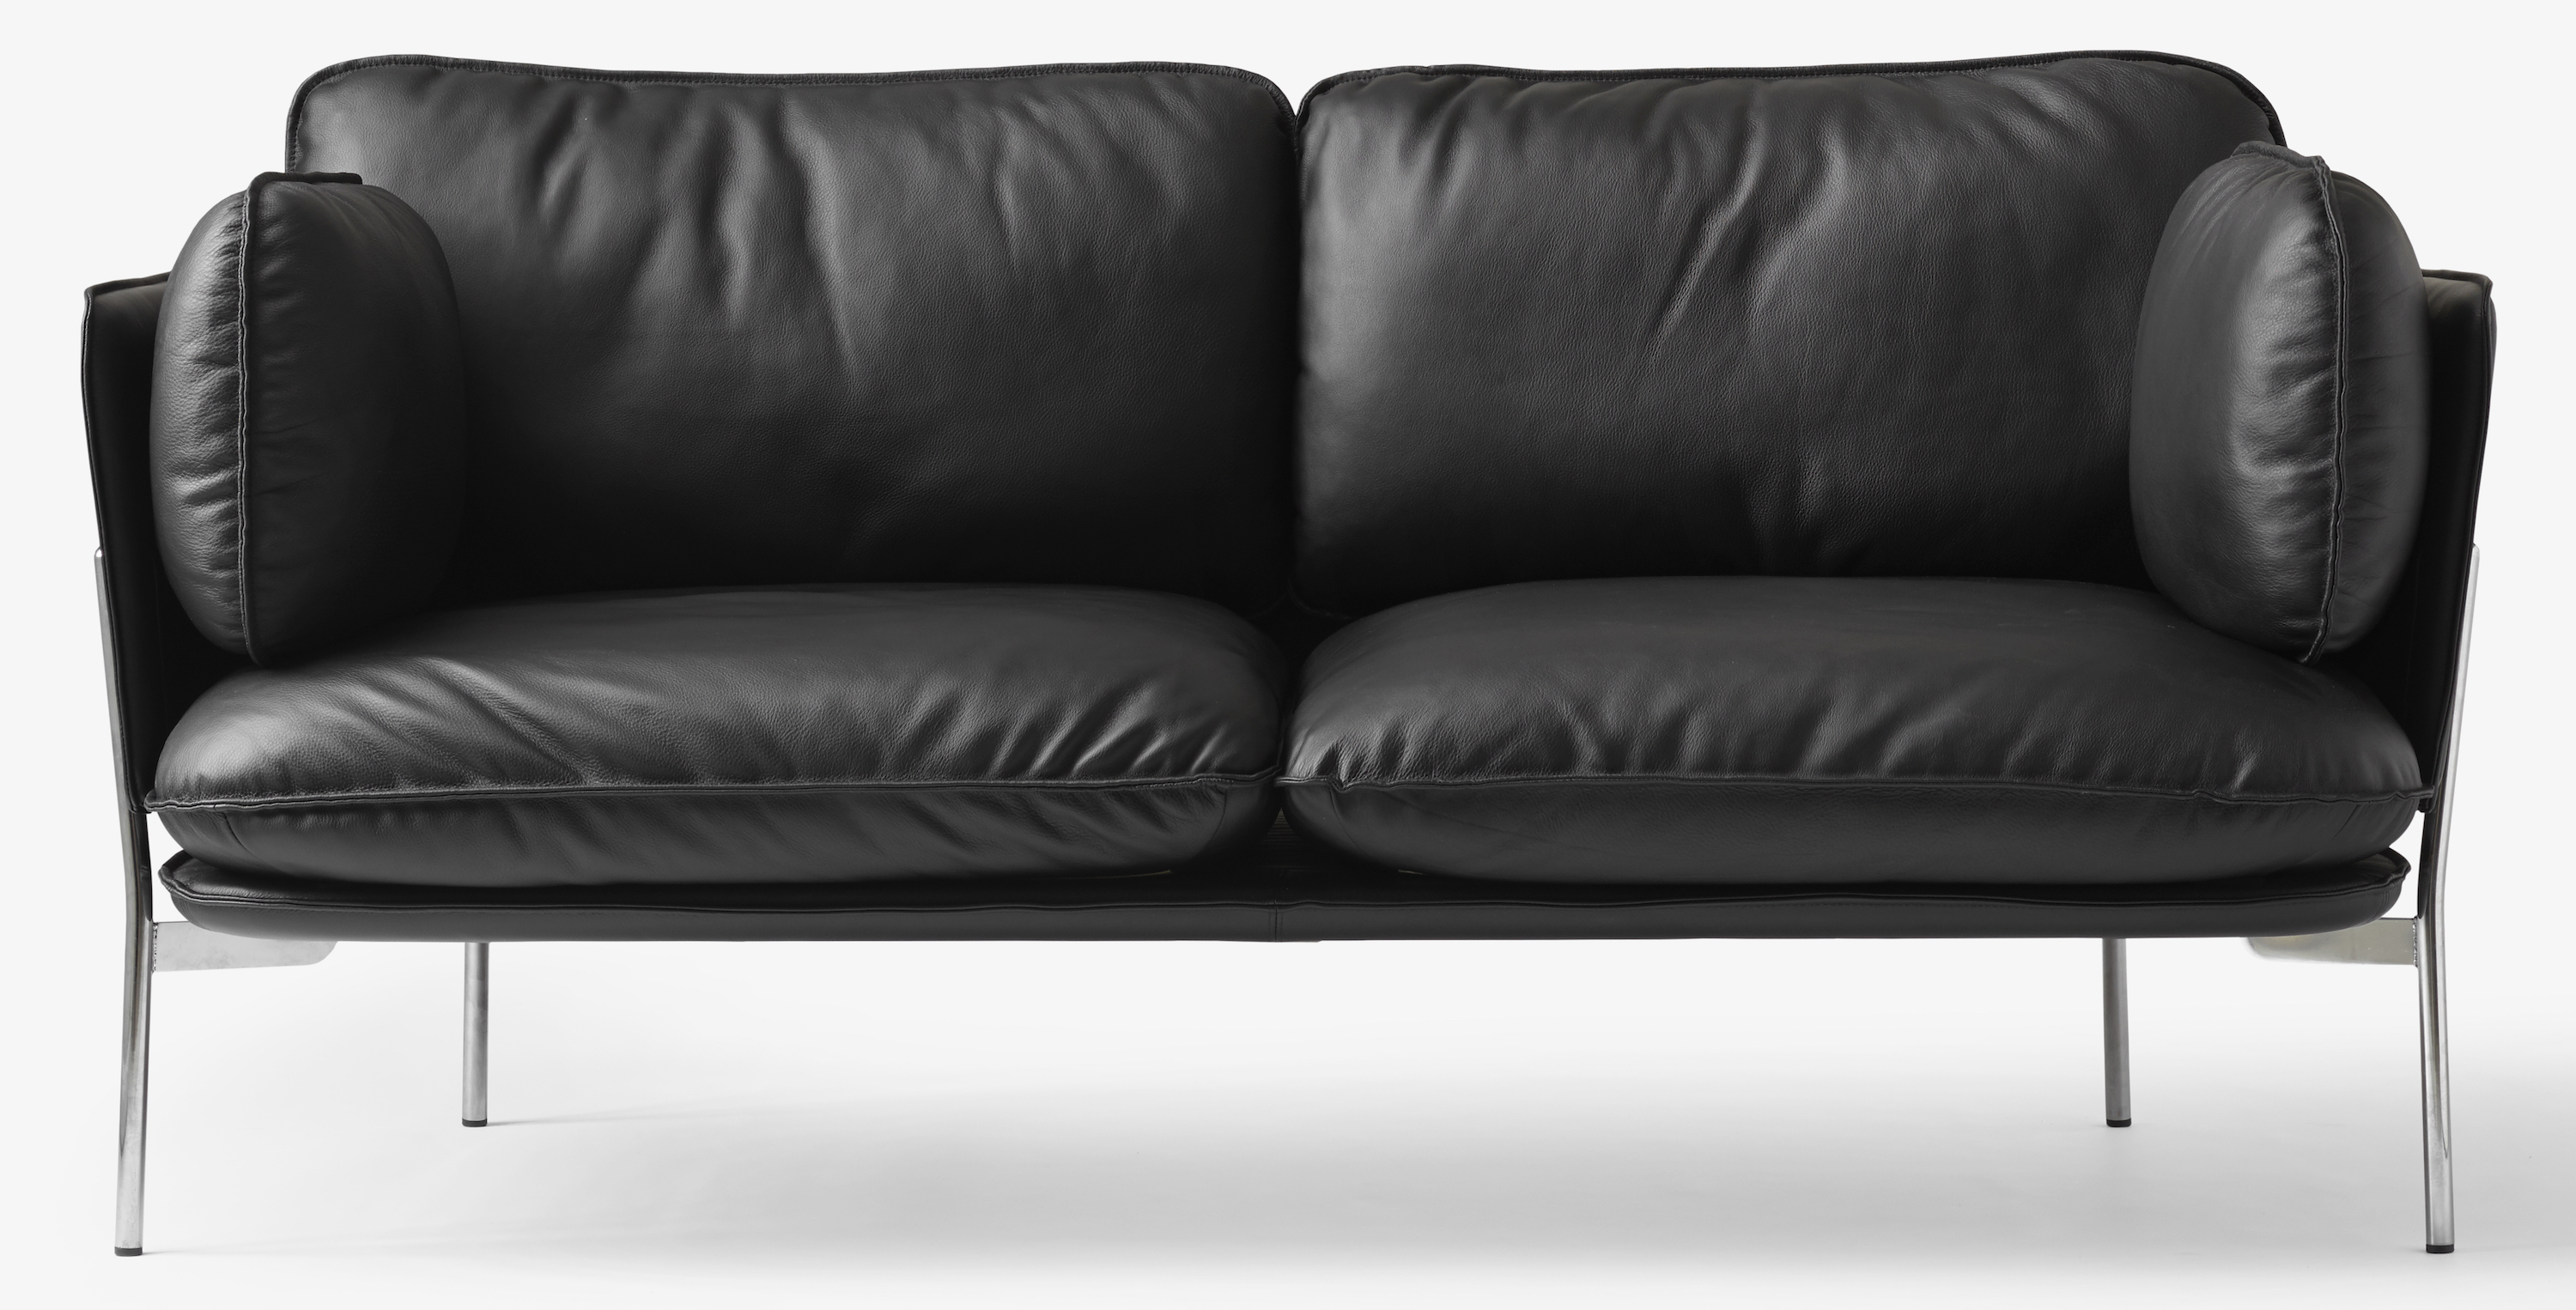 ampTradition Cloud Series 2 And 3 Seaters Armchair Pouf